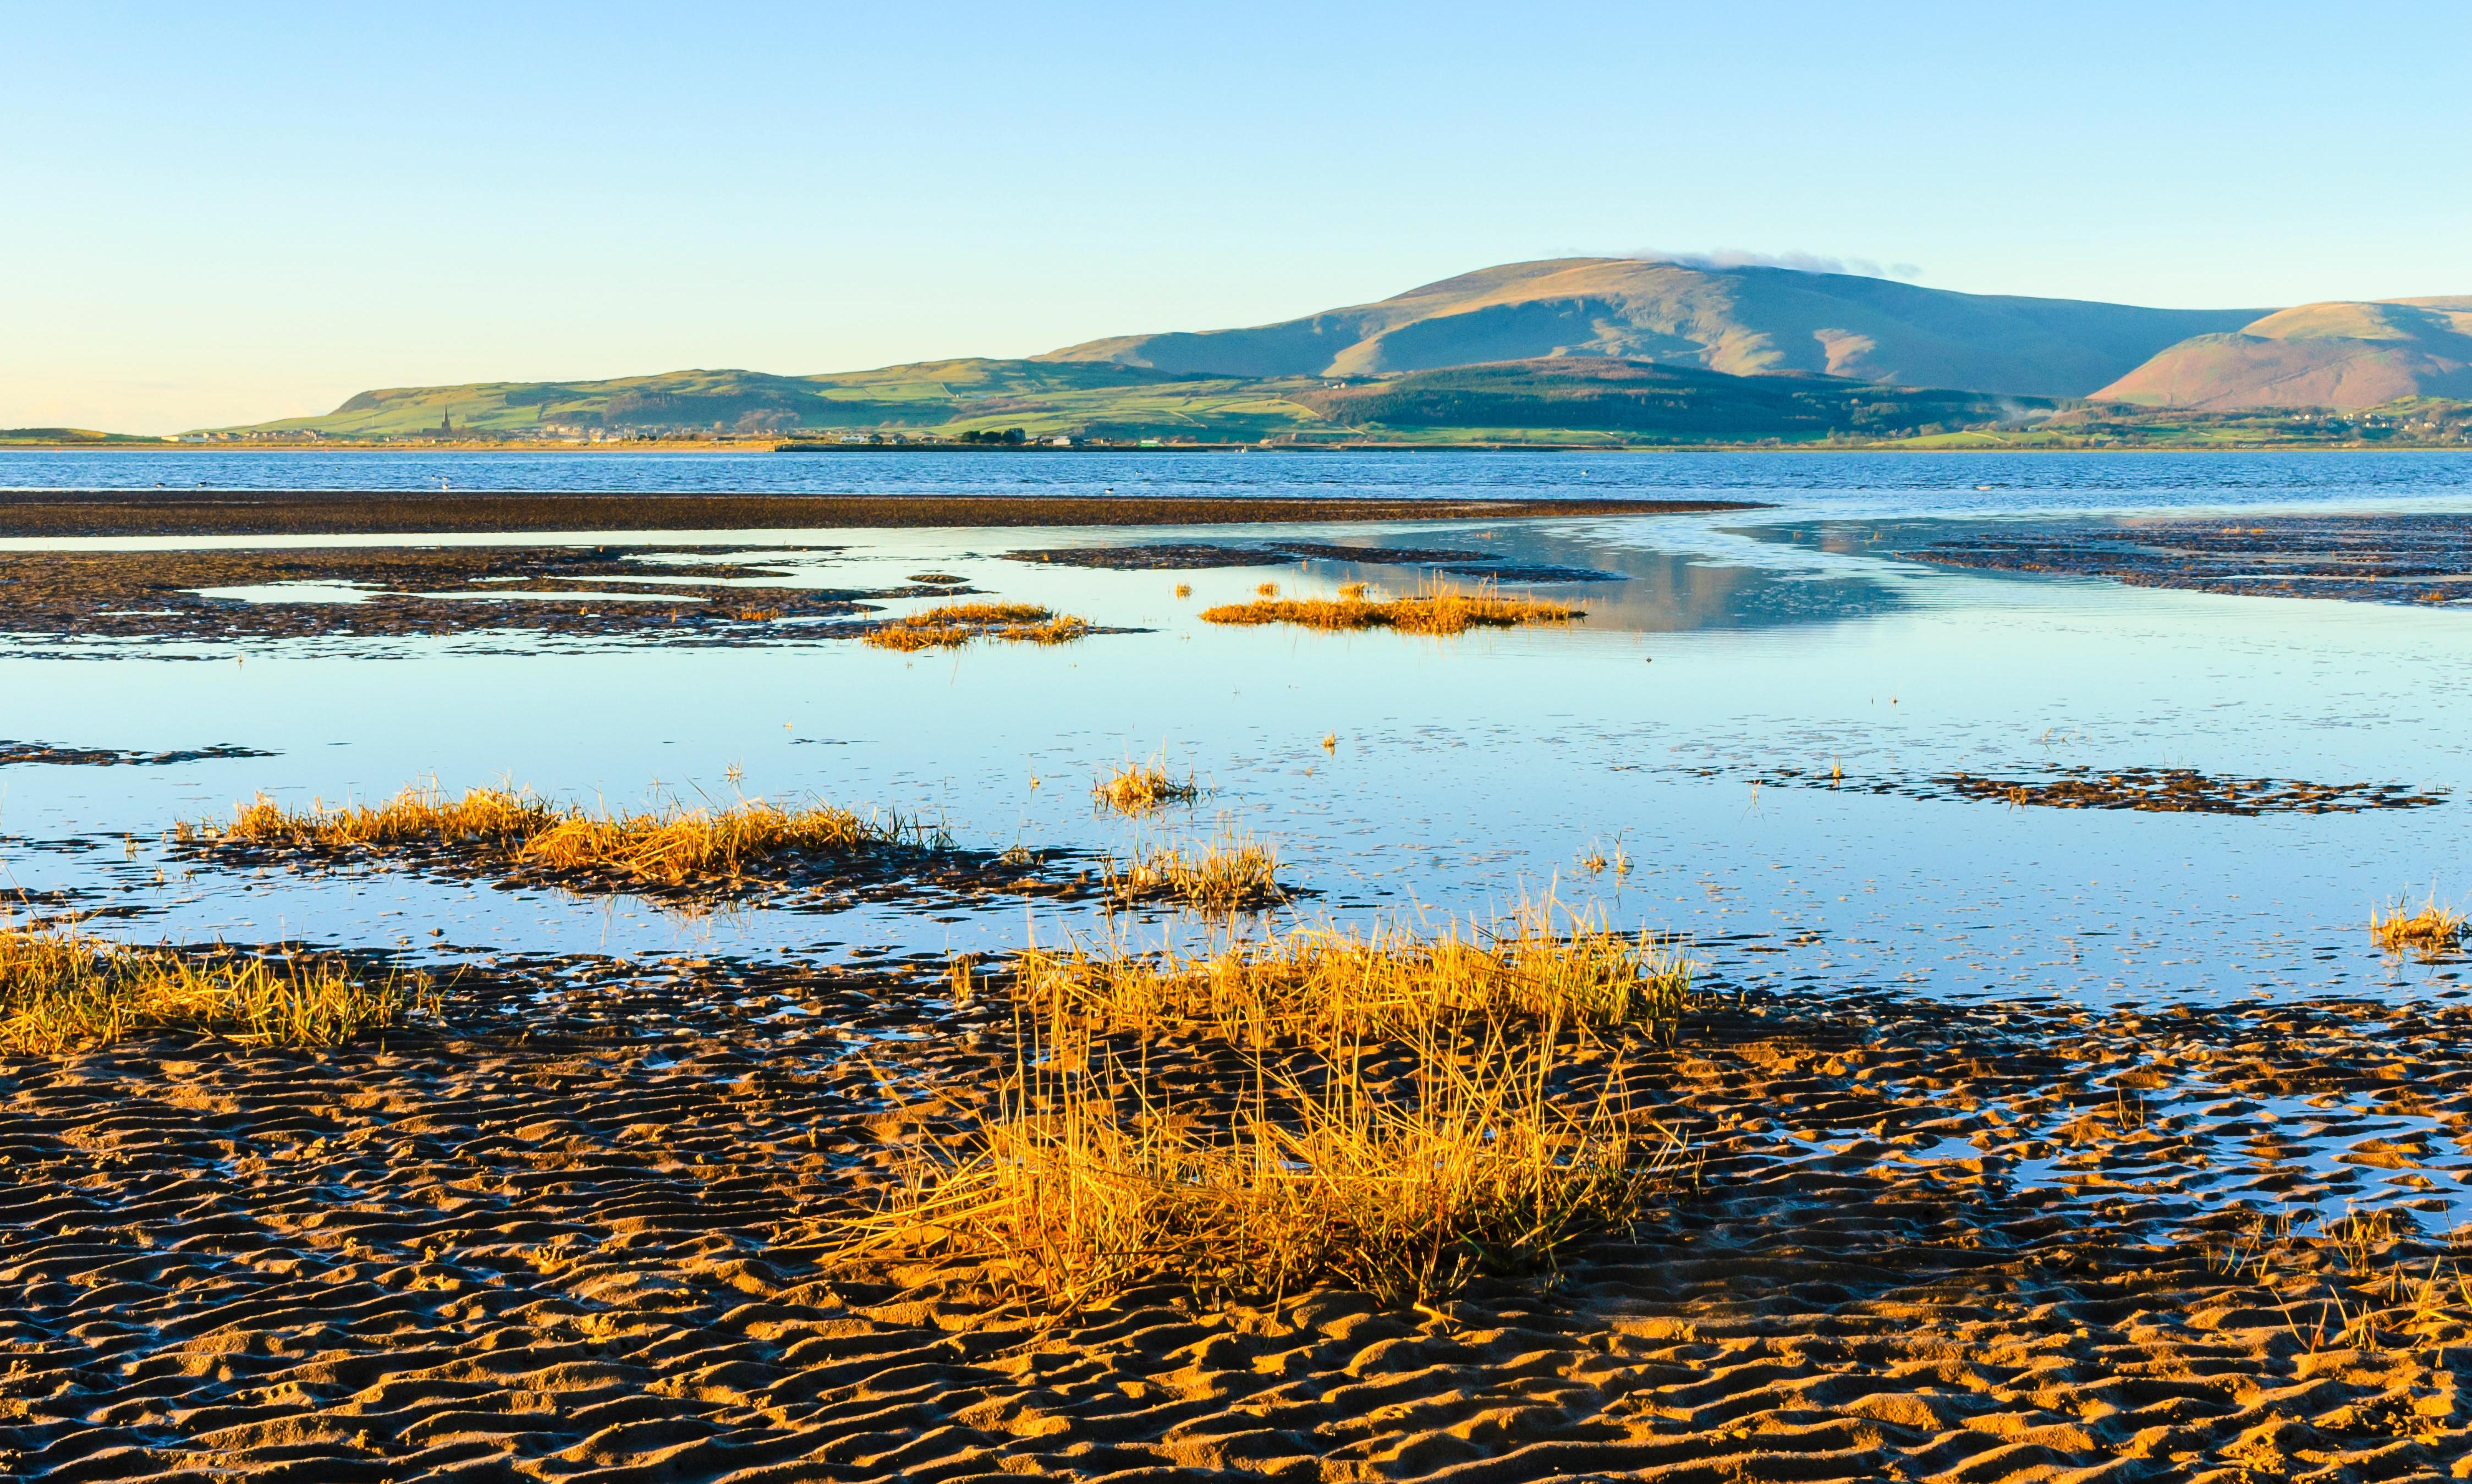 Skip the Lakes and see the Cumbrian coast – without a car